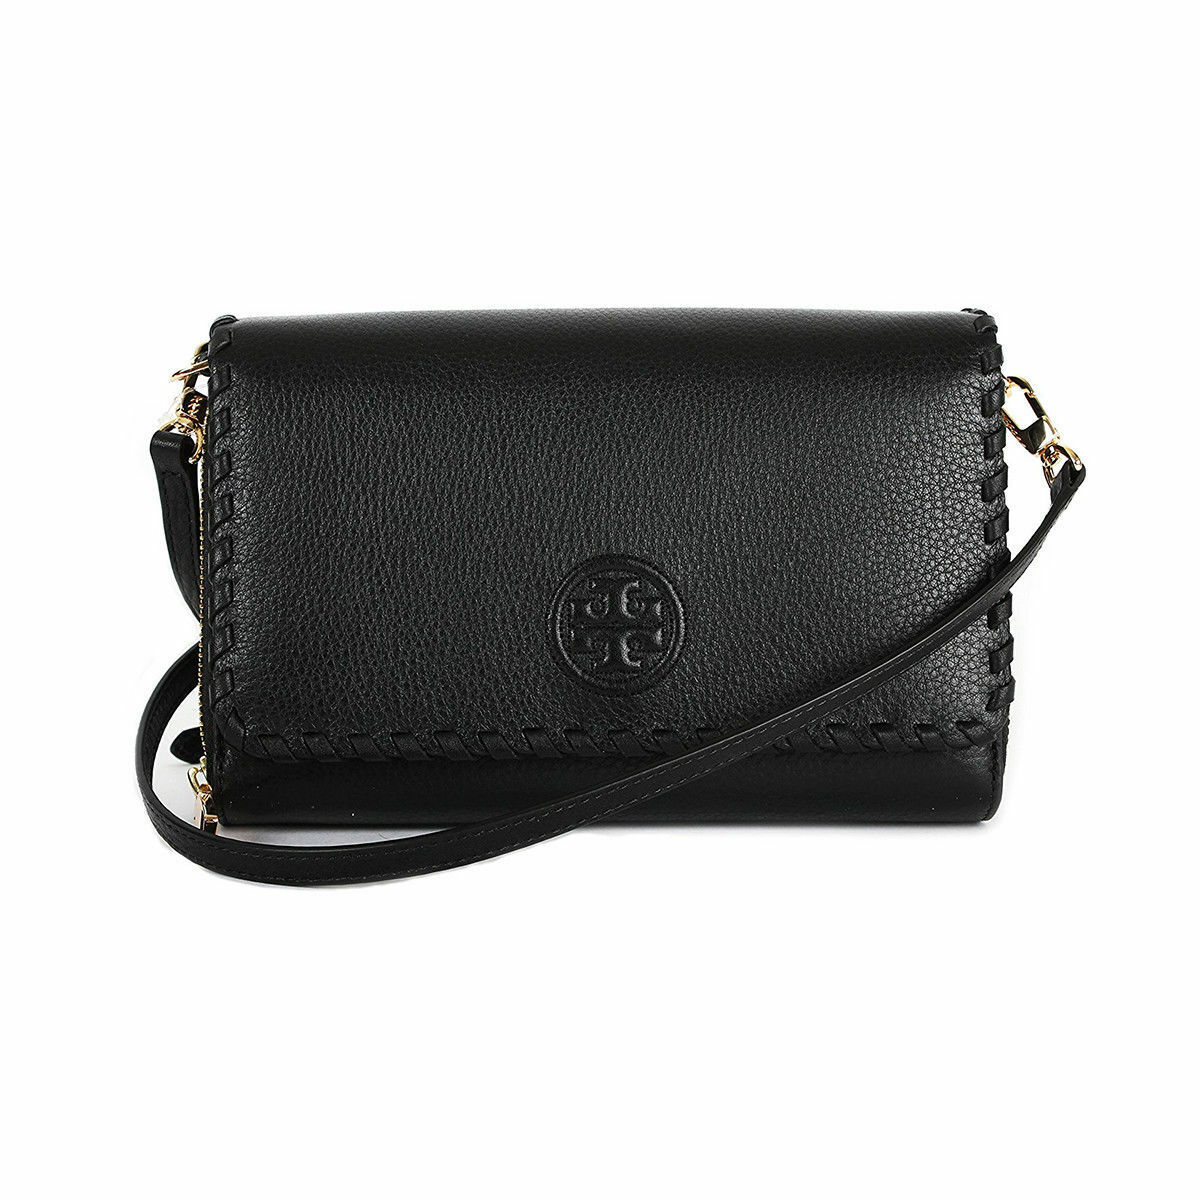 3cc06399776 Tory Burch Black Marion Cross Body Flat Wallet Clutch Purse 40862 ...